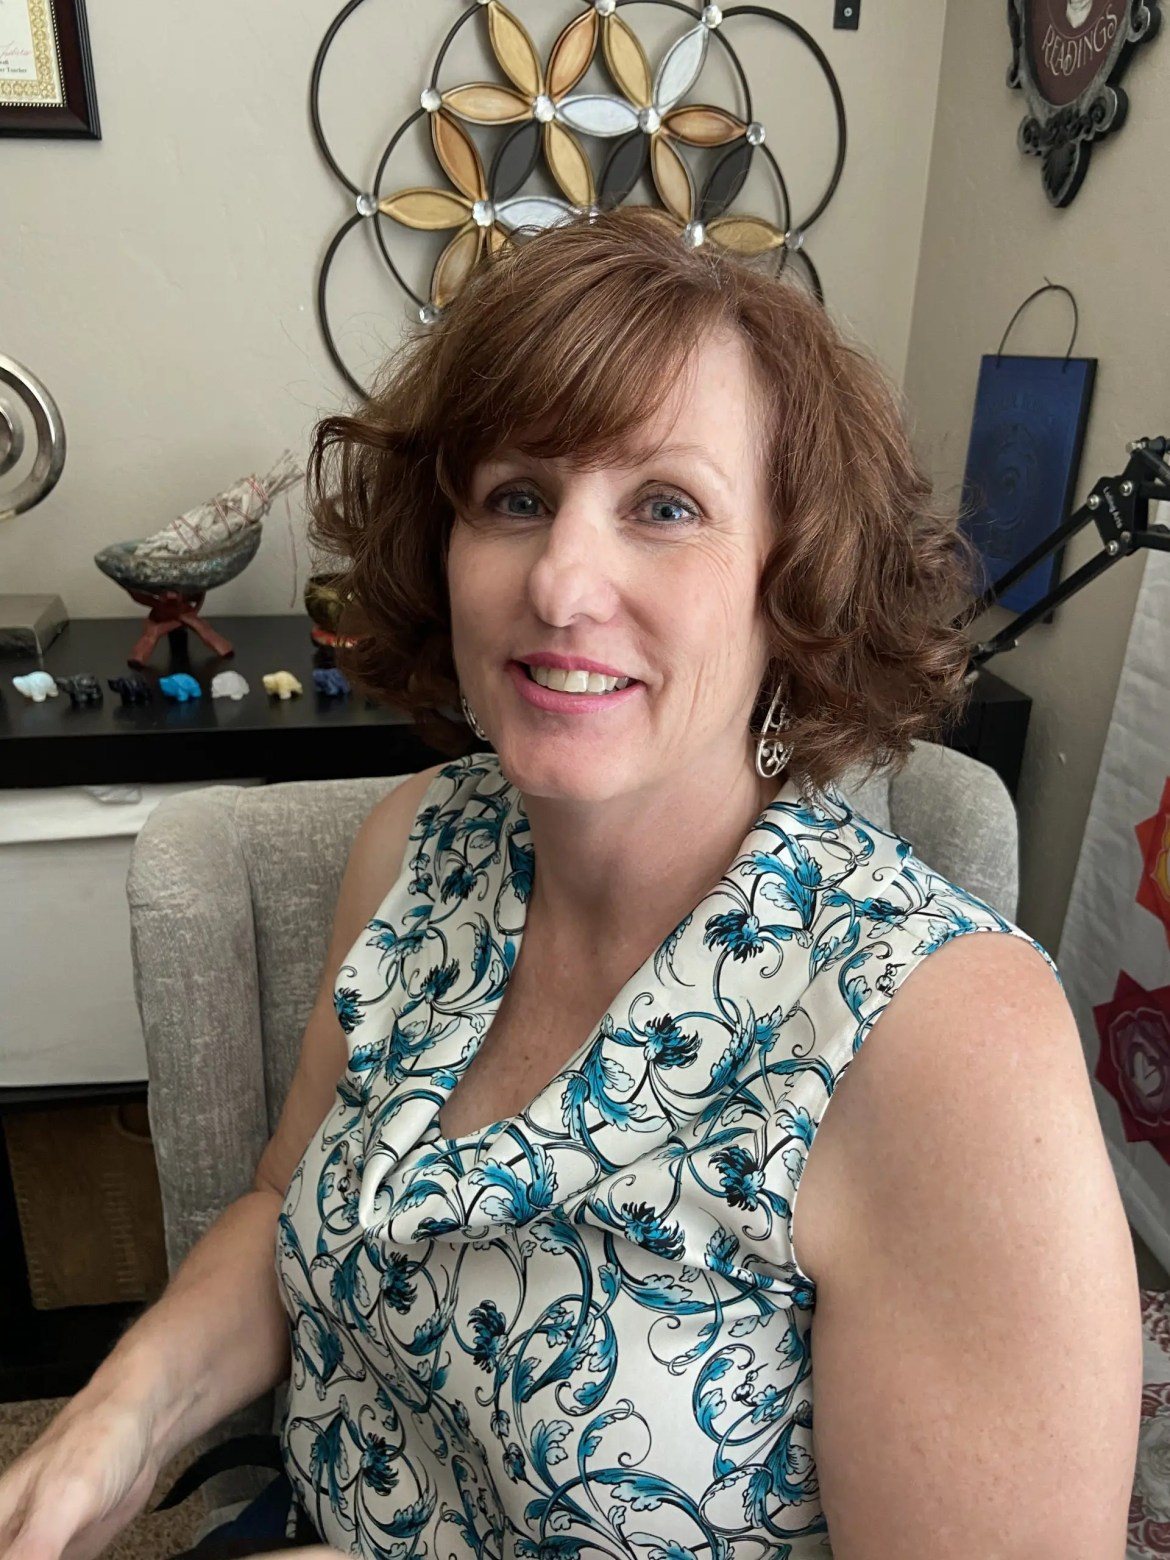 Personal Frequency Coding for Healing with Ronda DeYoung